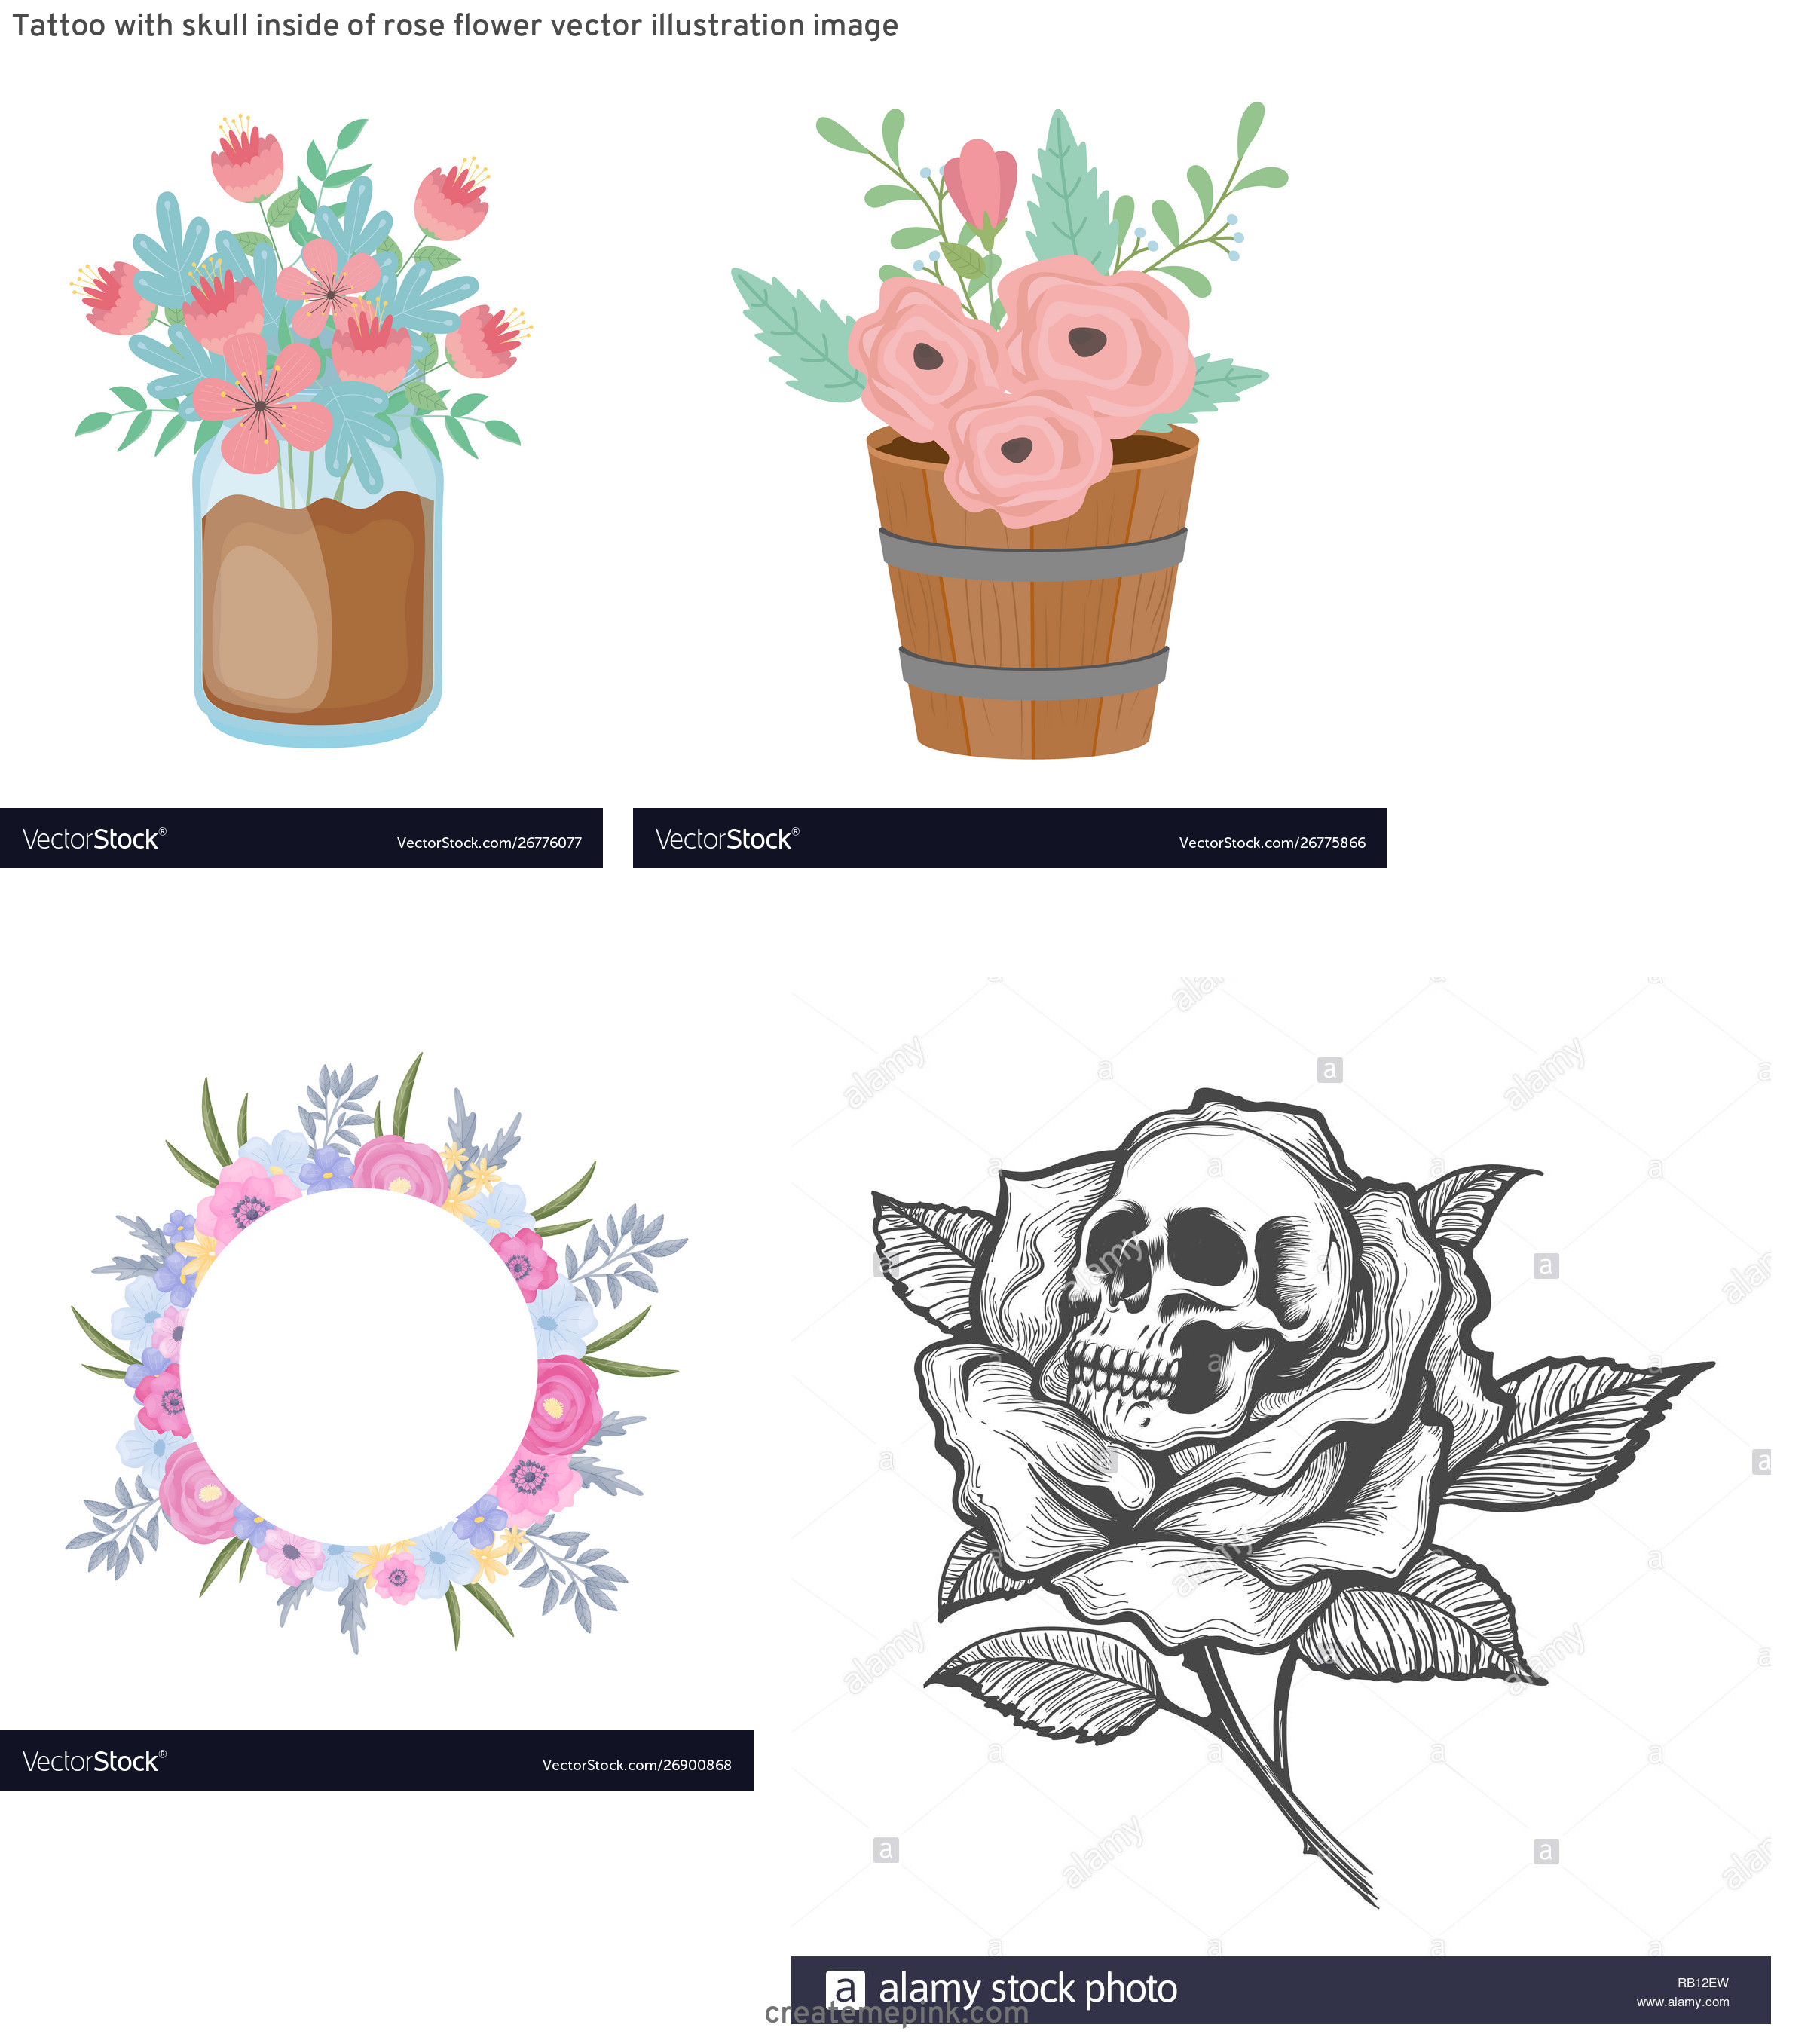 Inside Of Flower Vector: Tattoo With Skull Inside Of Rose Flower Vector Illustration Image